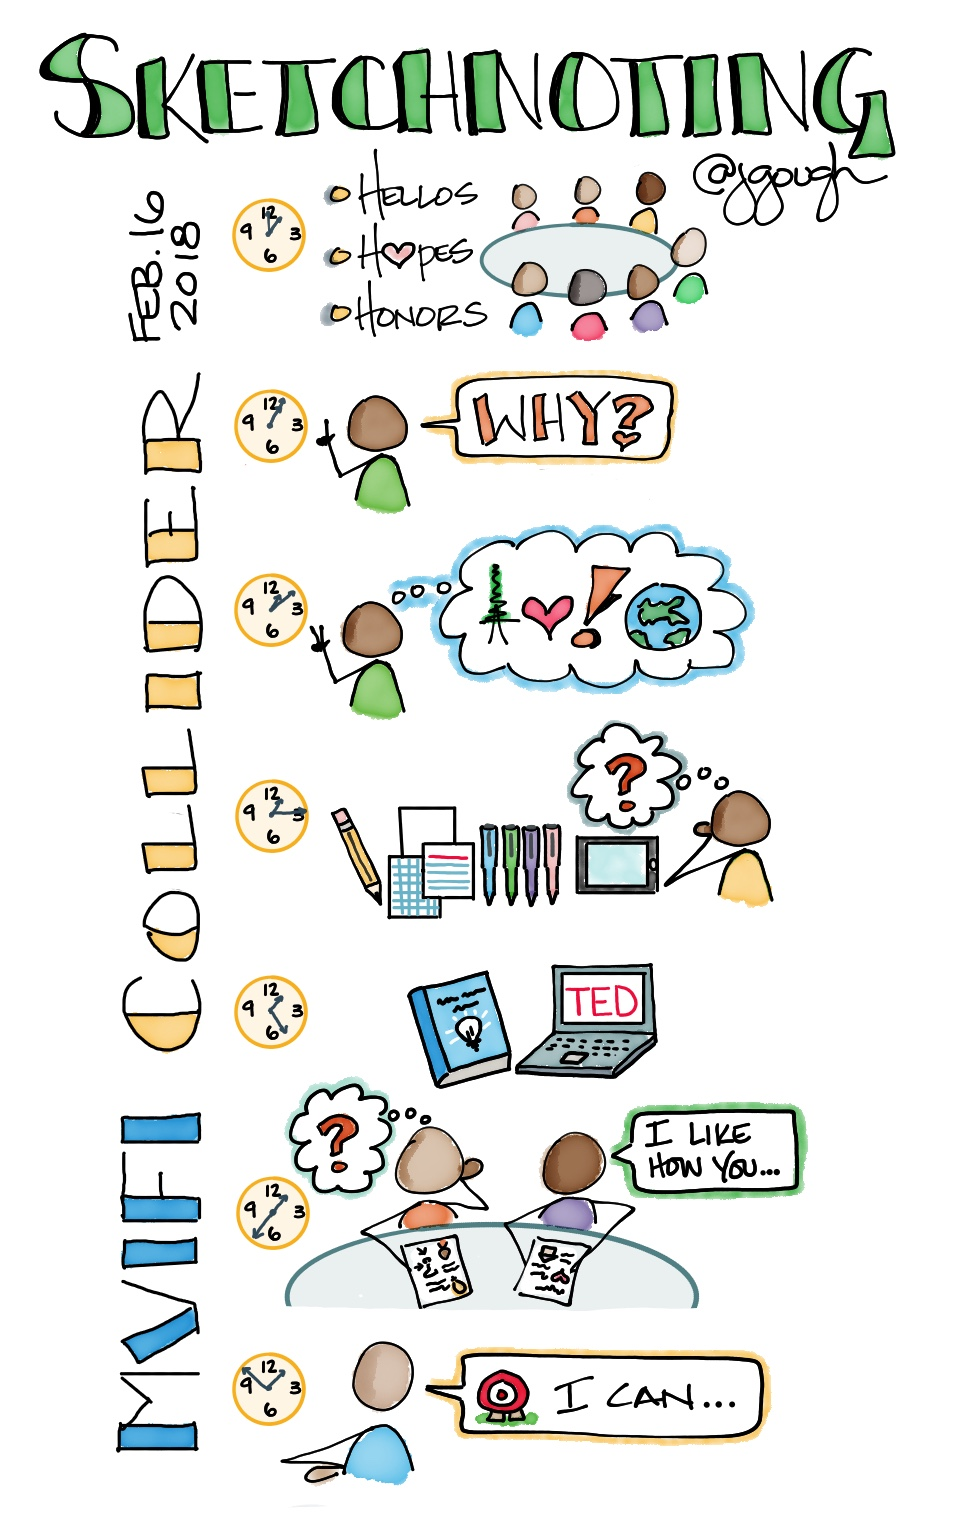 02.16.18 #MVIFI Collider #Sketchnote workshop agenda